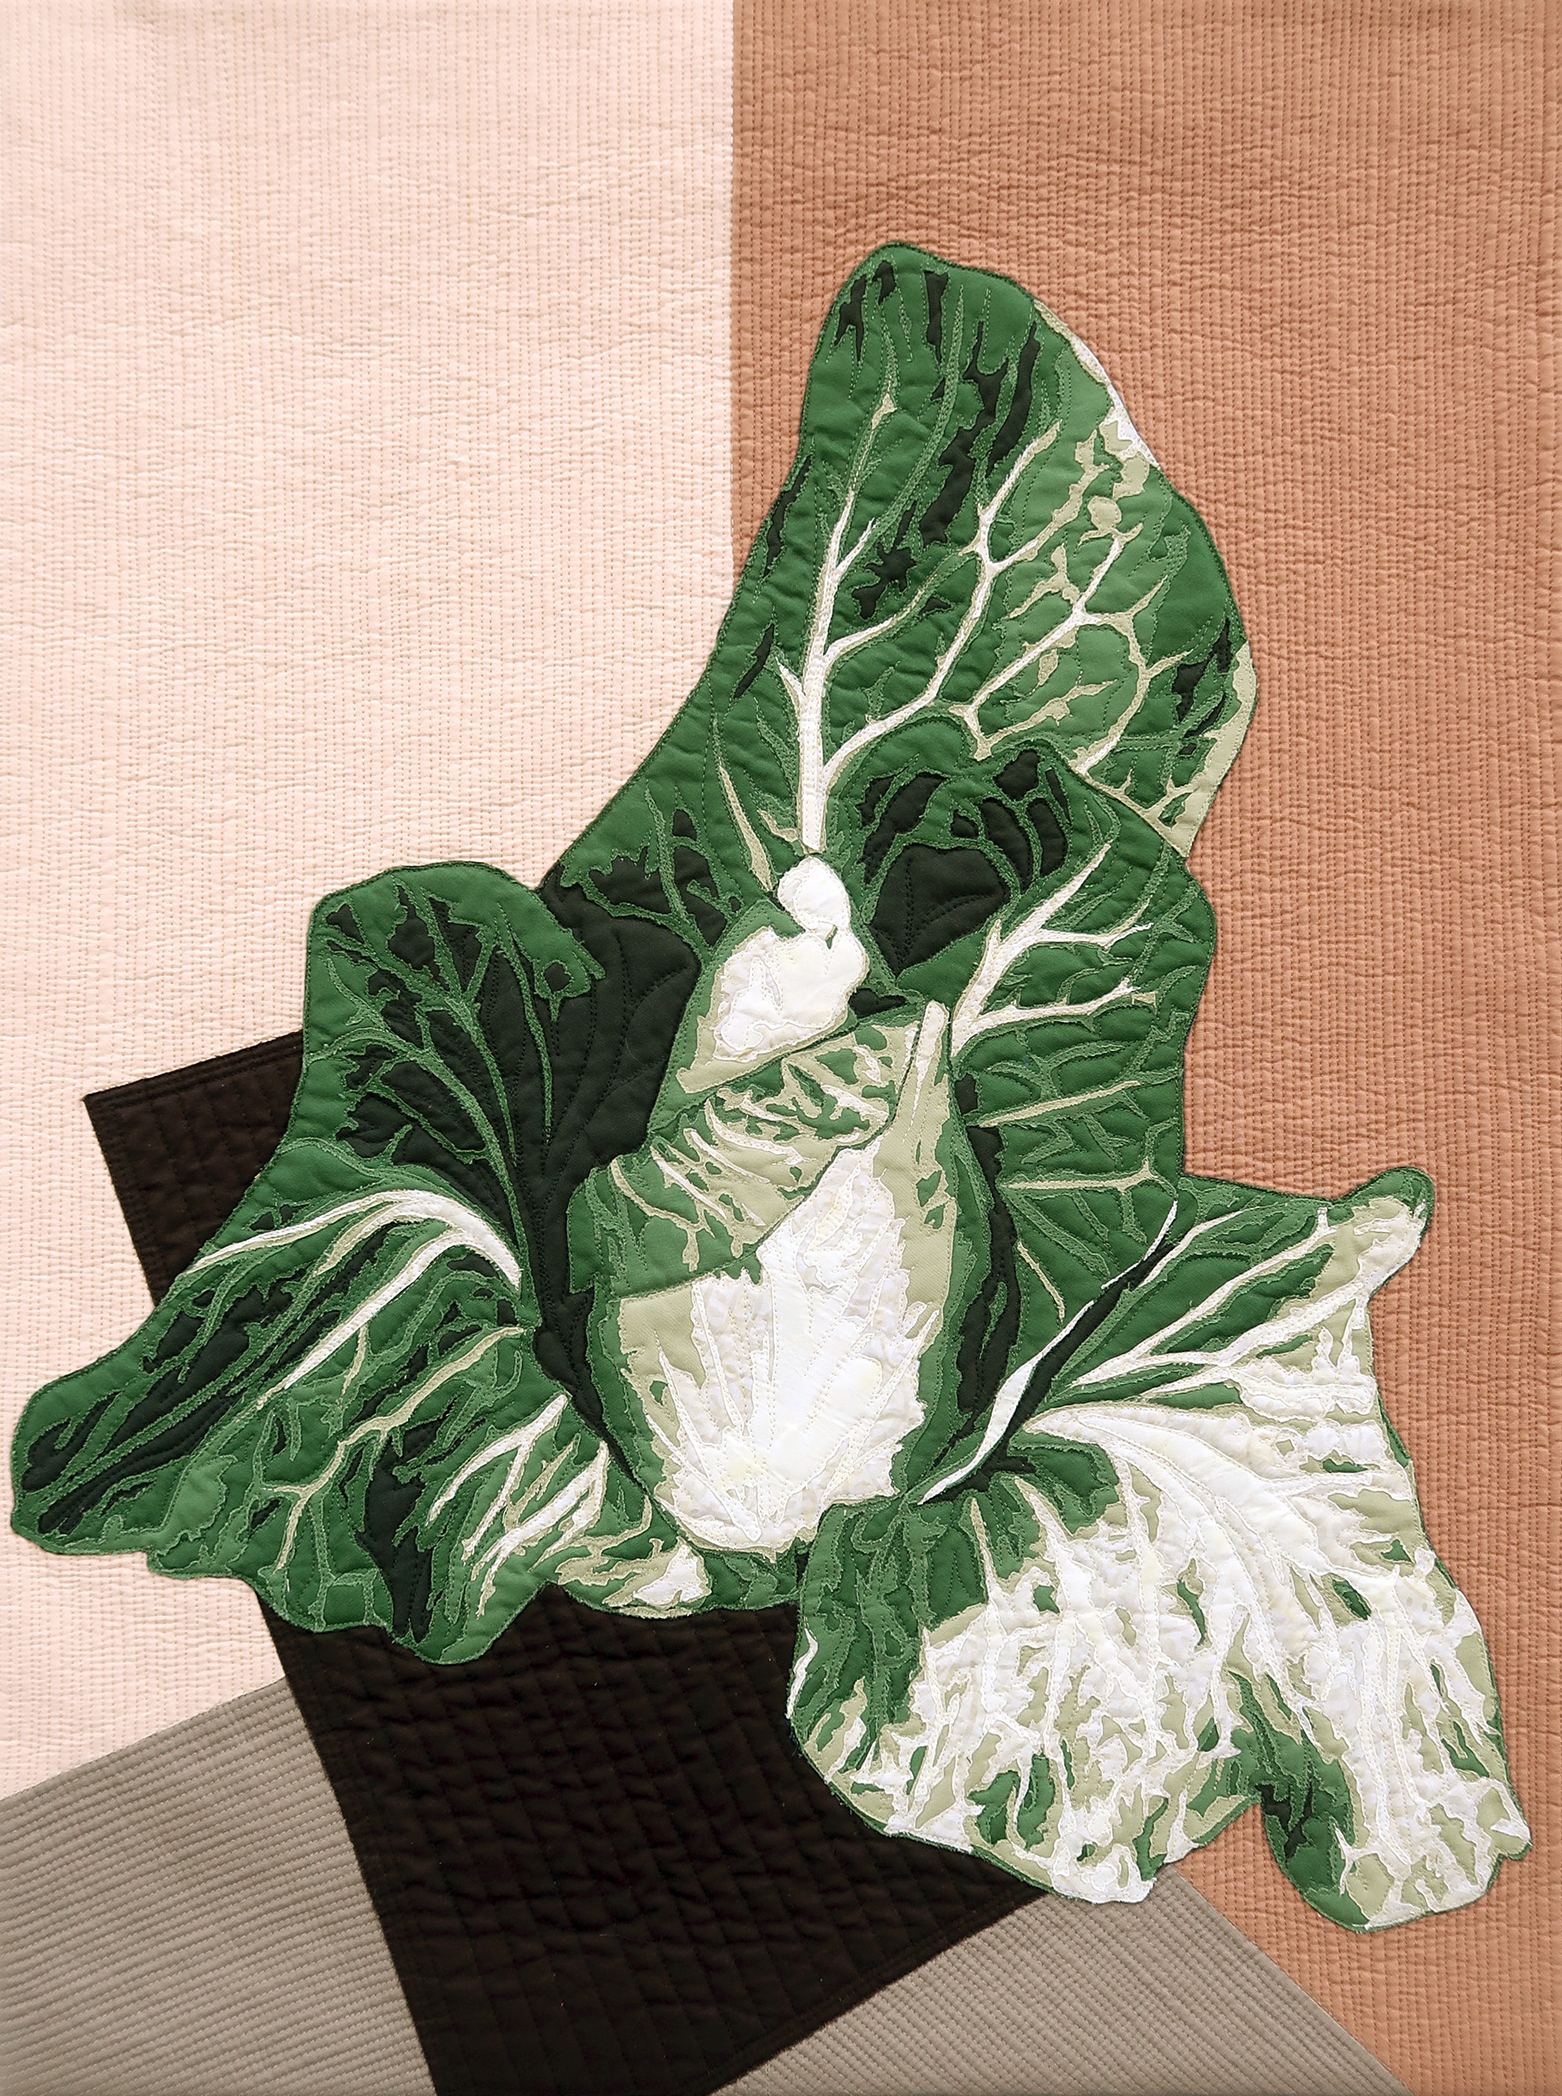 emily-williams_our-lady-of-brassica-de-santa-fe